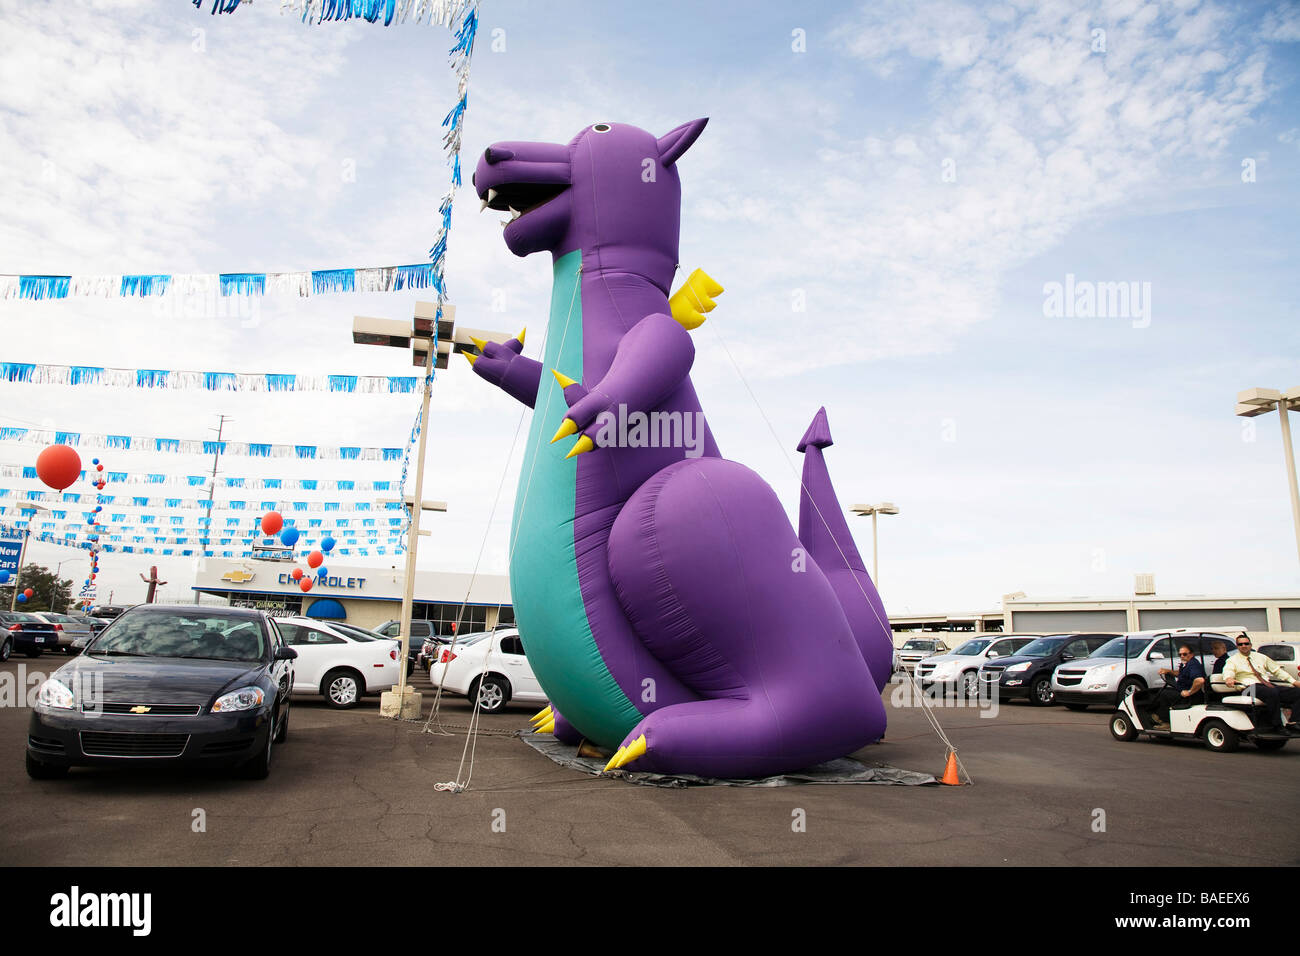 inflatable purple and green dragon - Stock Image